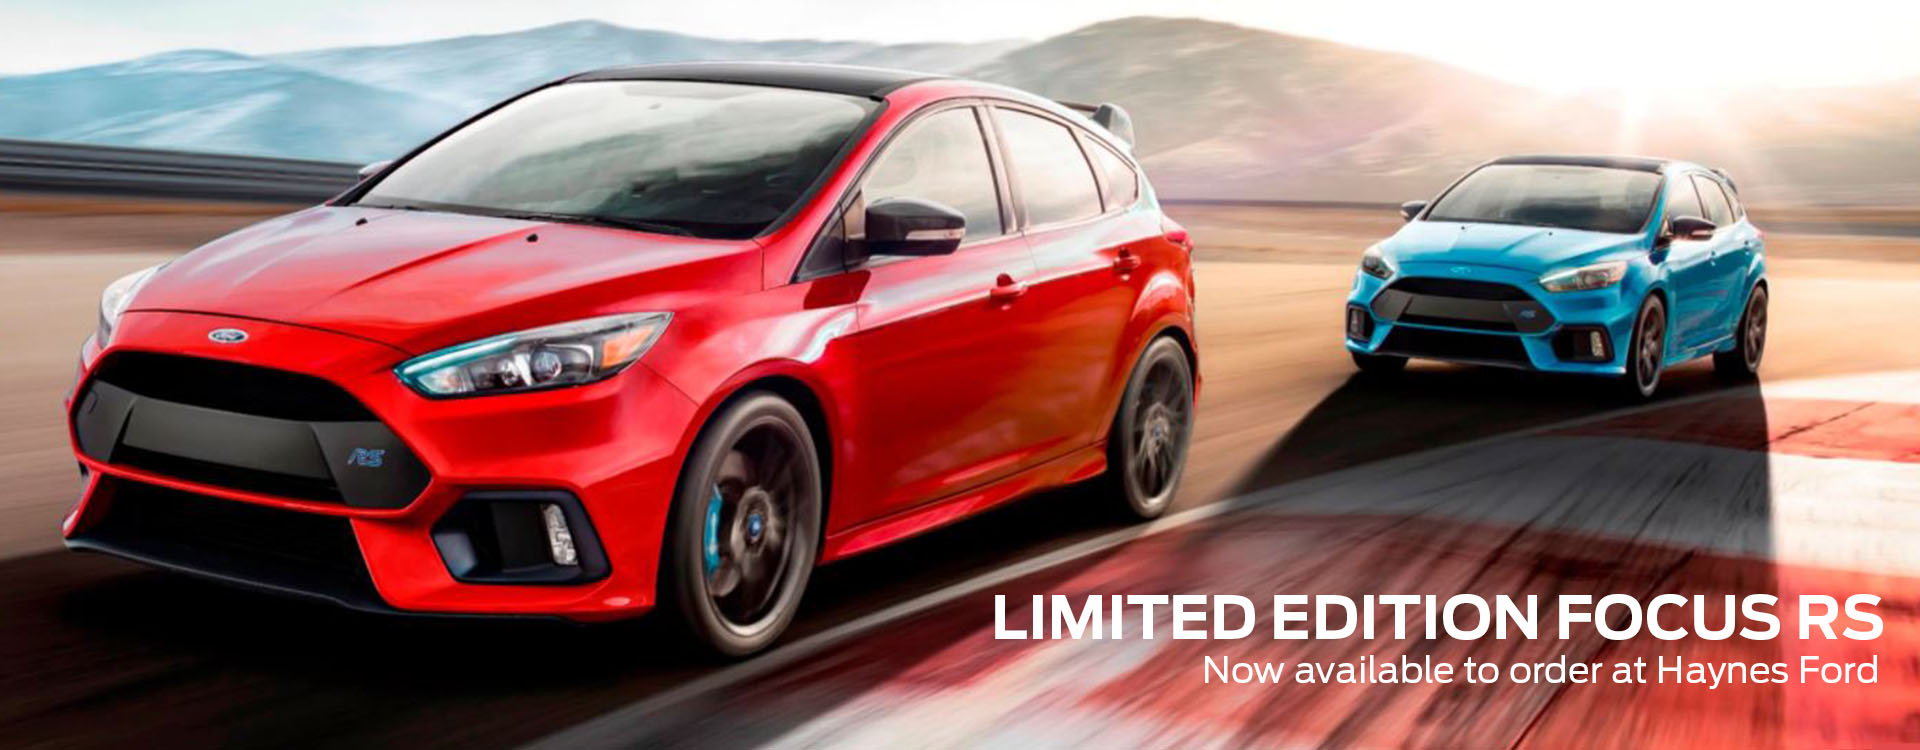 The Limited Edition Focus Rs Now Available To Order At Haynes Ford